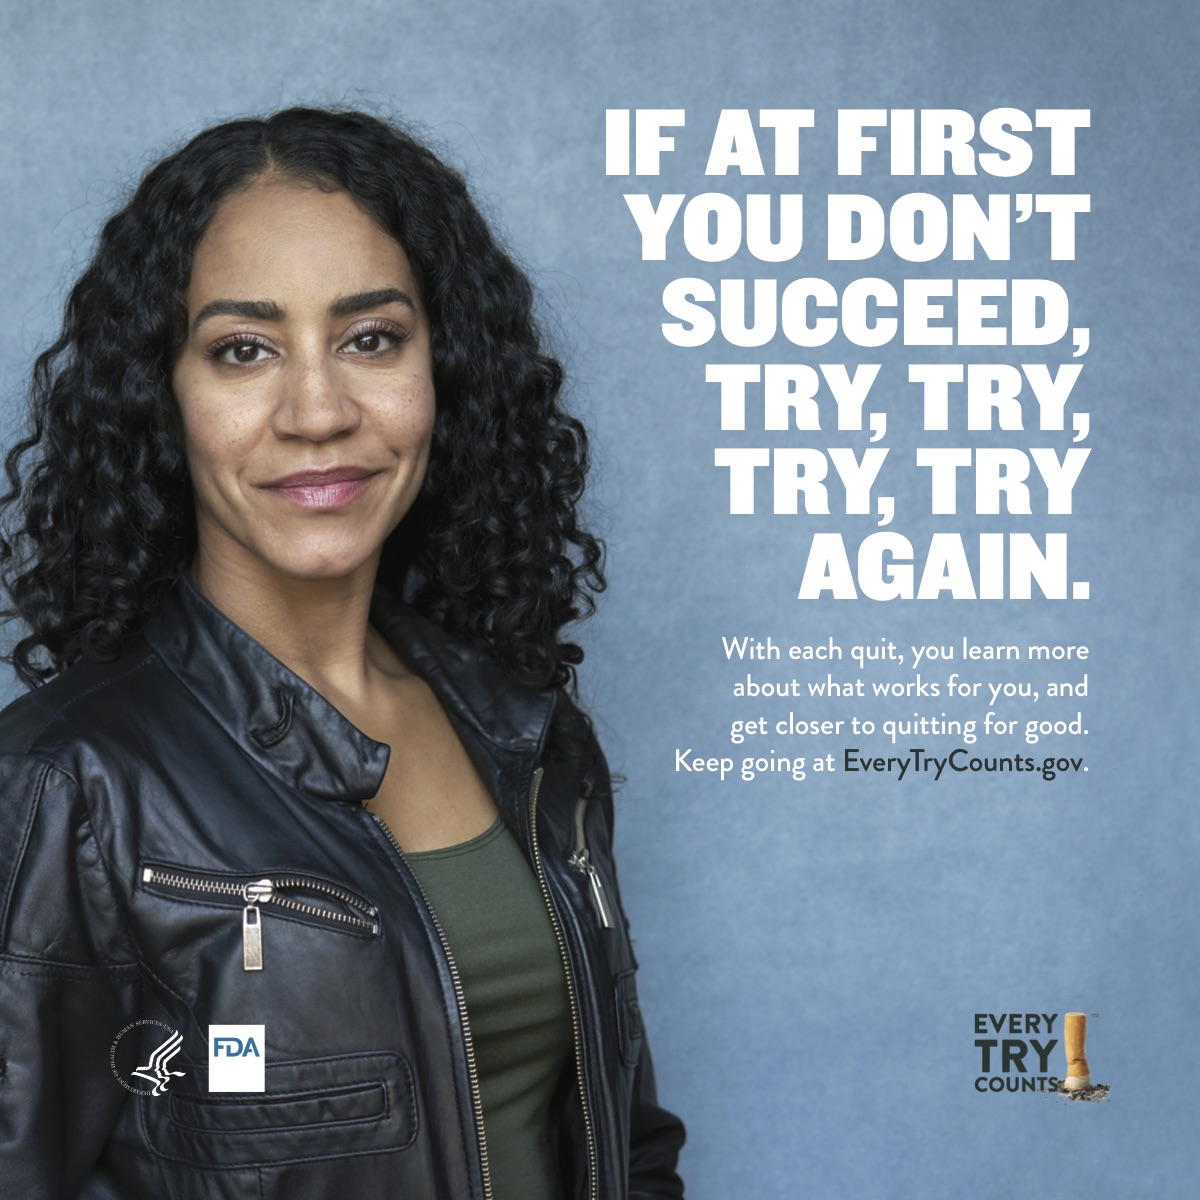 The FDA´s new anti-smoking ads will run in and around stores that sell cigarettes.